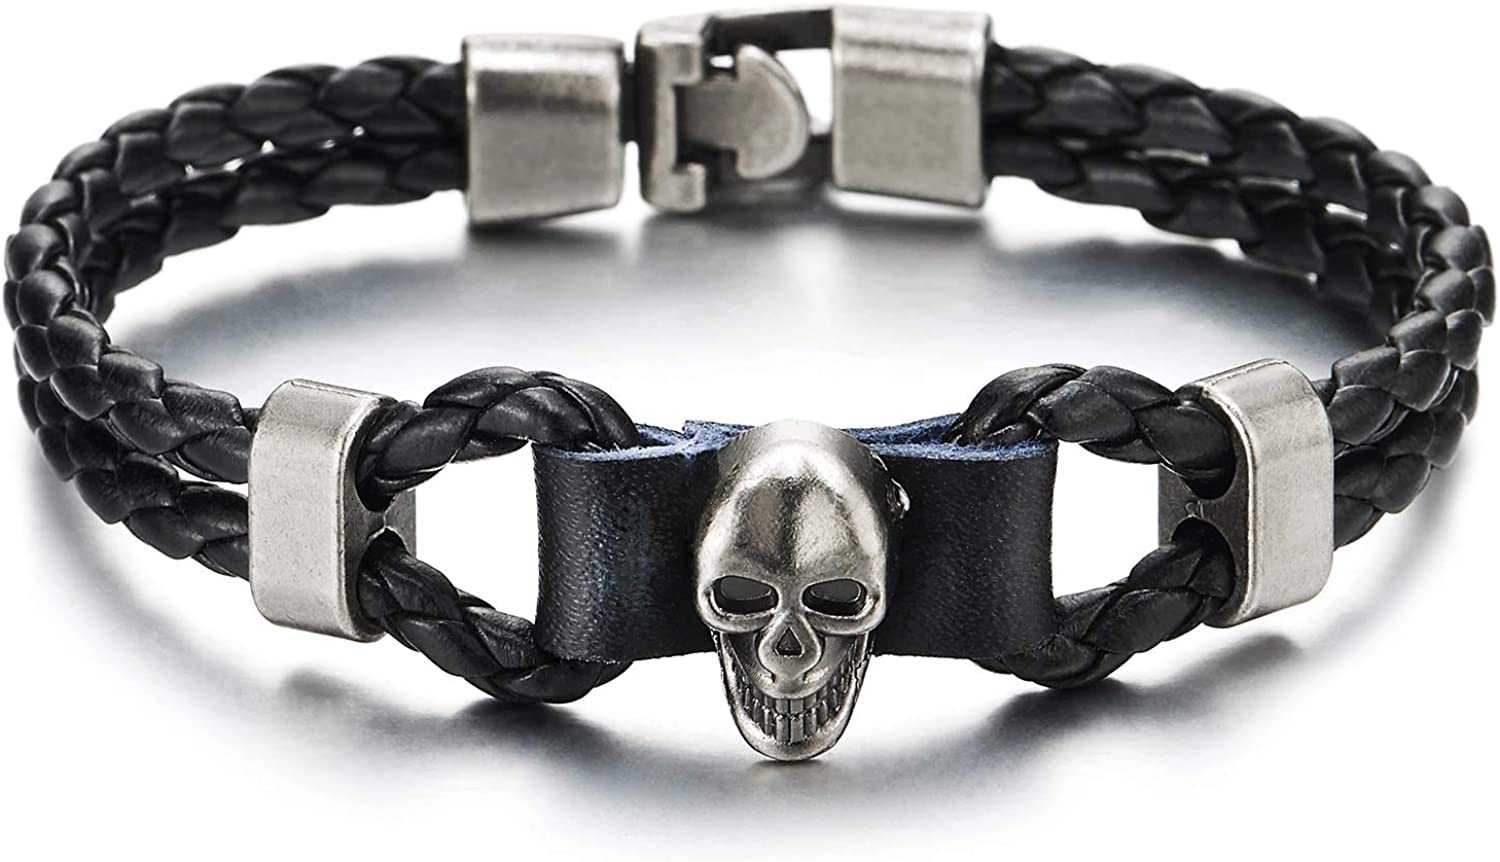 COOLSTEELANDBEYOND Mens Women Two-Row Black Braided Leather Knot Wristband Bangle Bracelet with Grey Skull Charm